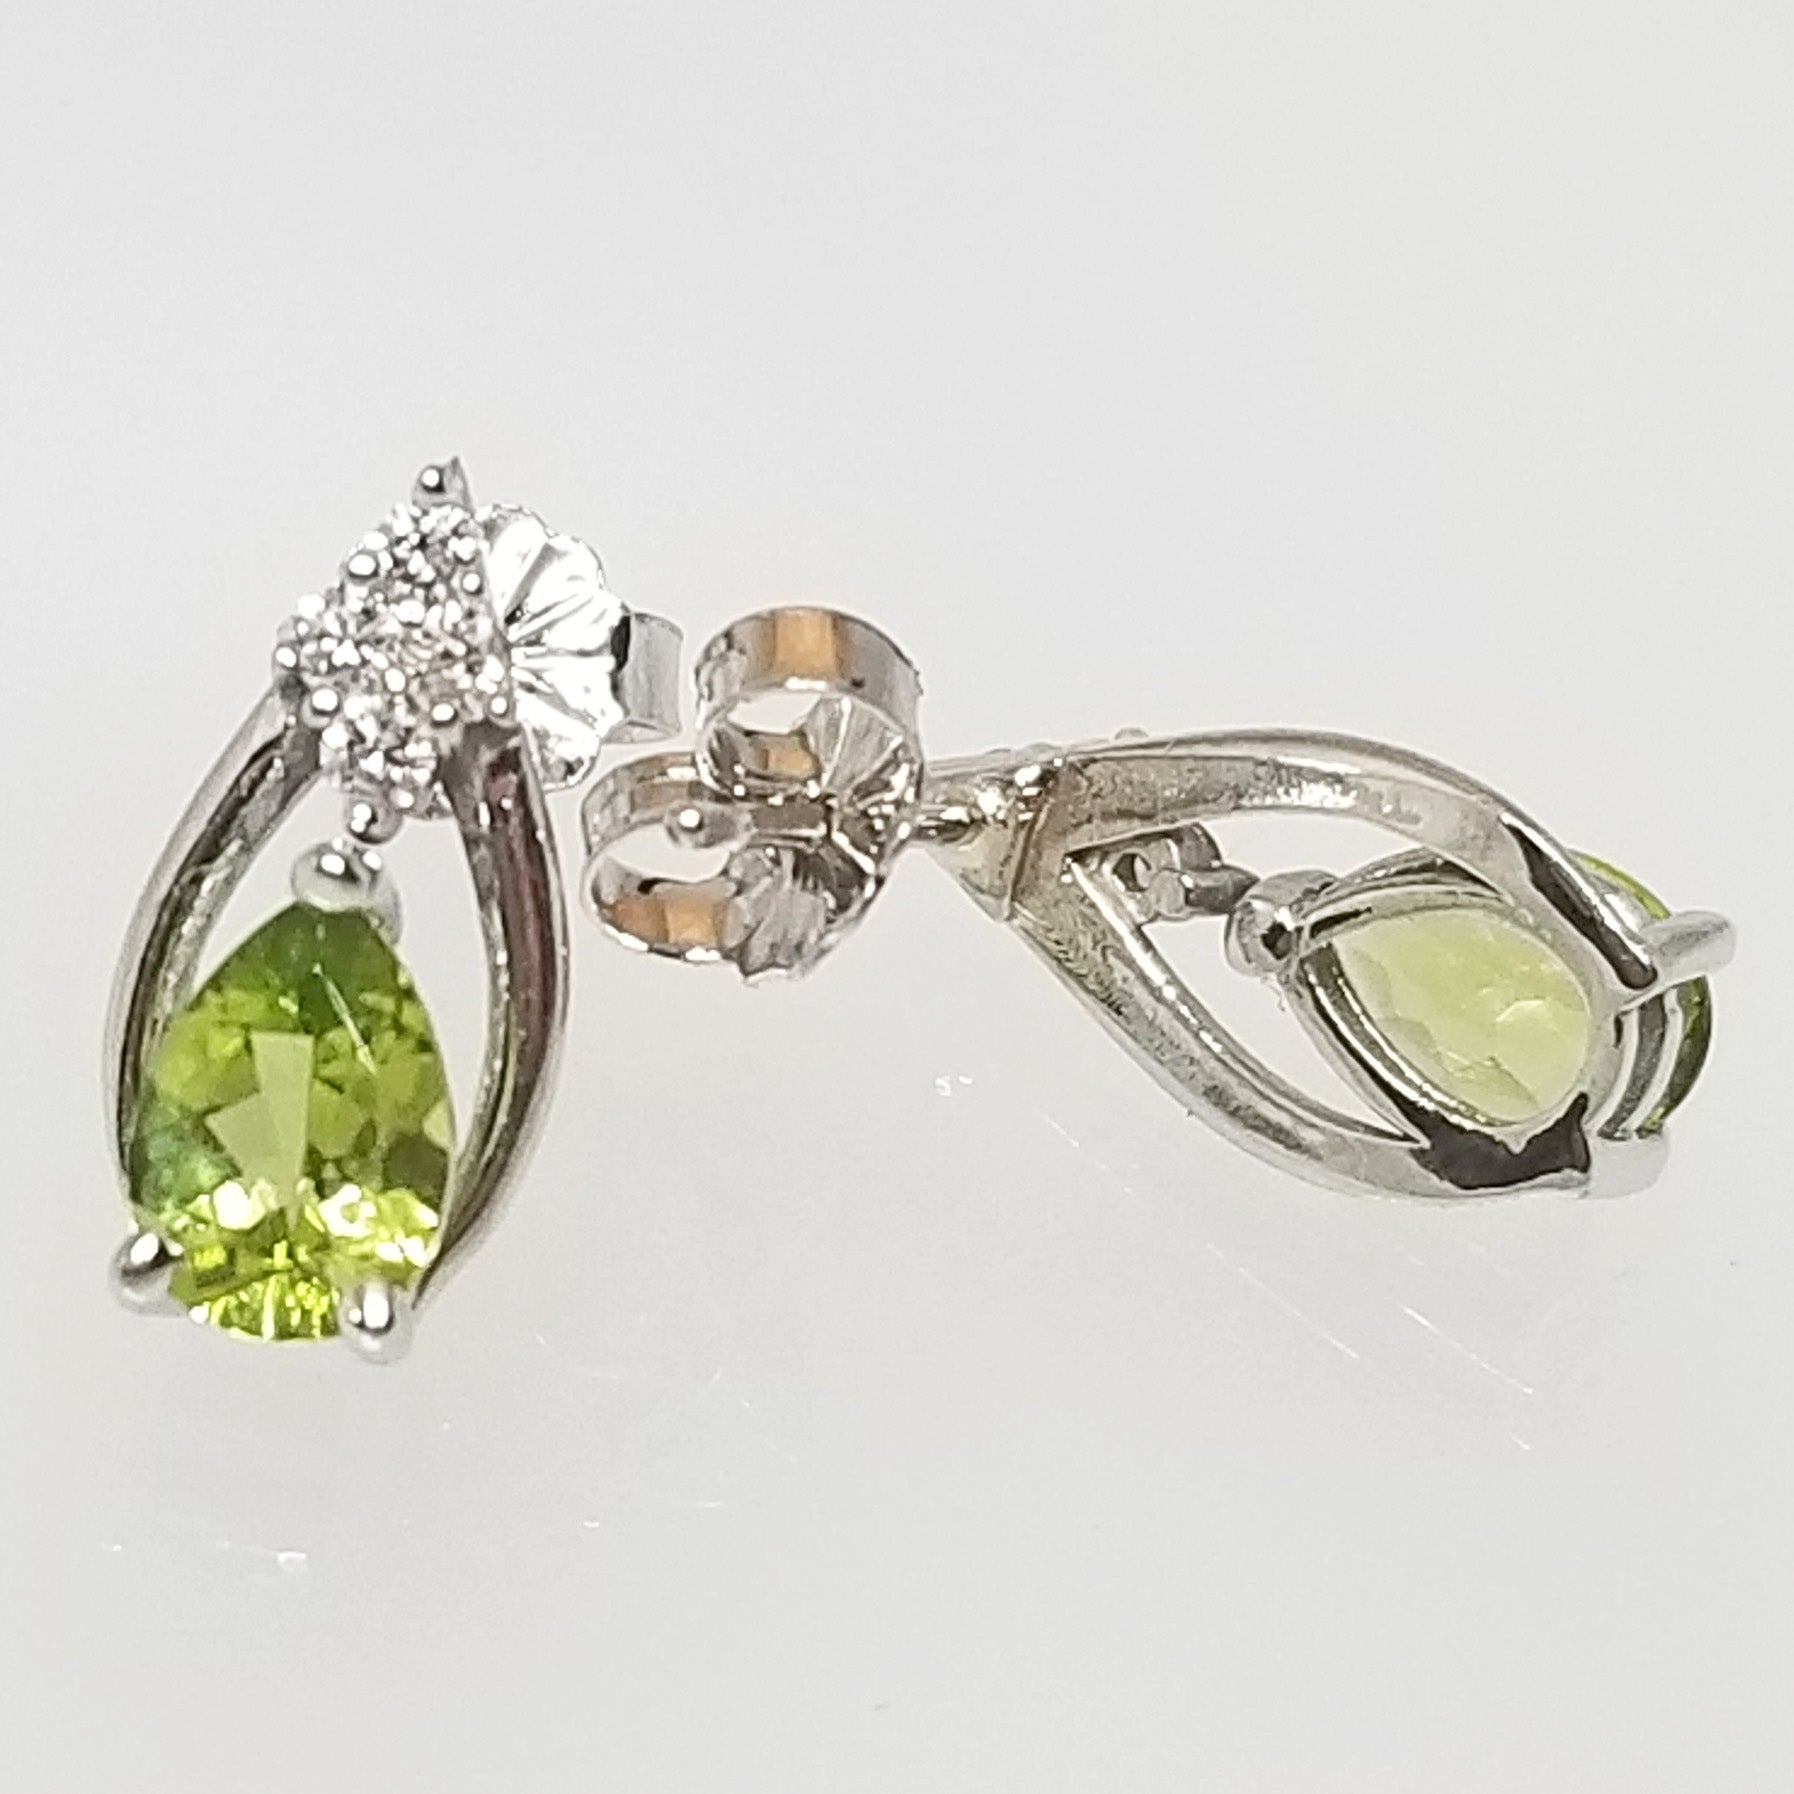 Ready to ship peridot and diamond pear earrings in 14k white gold